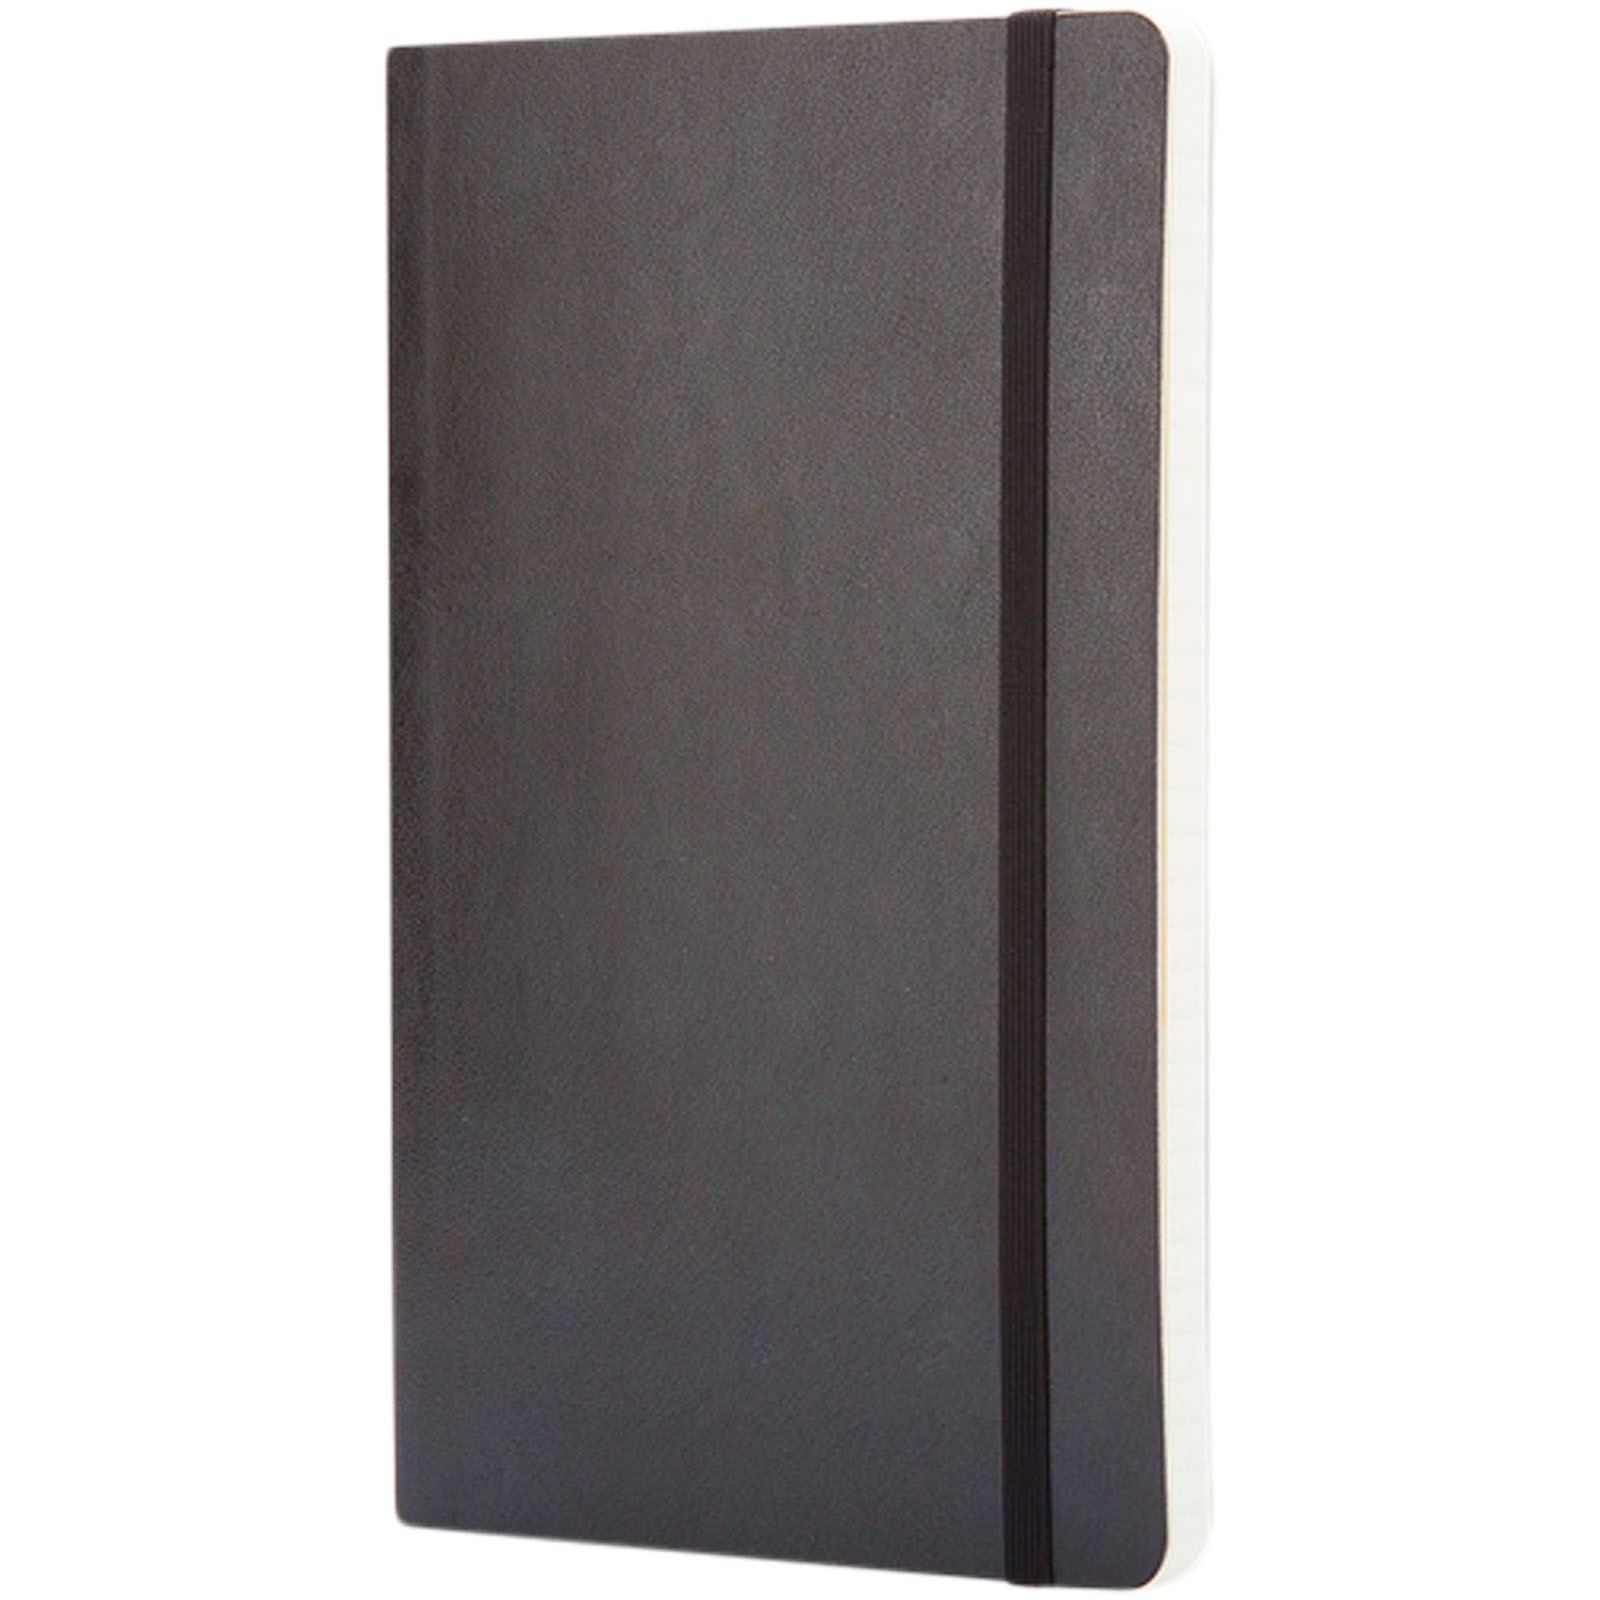 Classic L soft cover notebook - squared - Solid Black